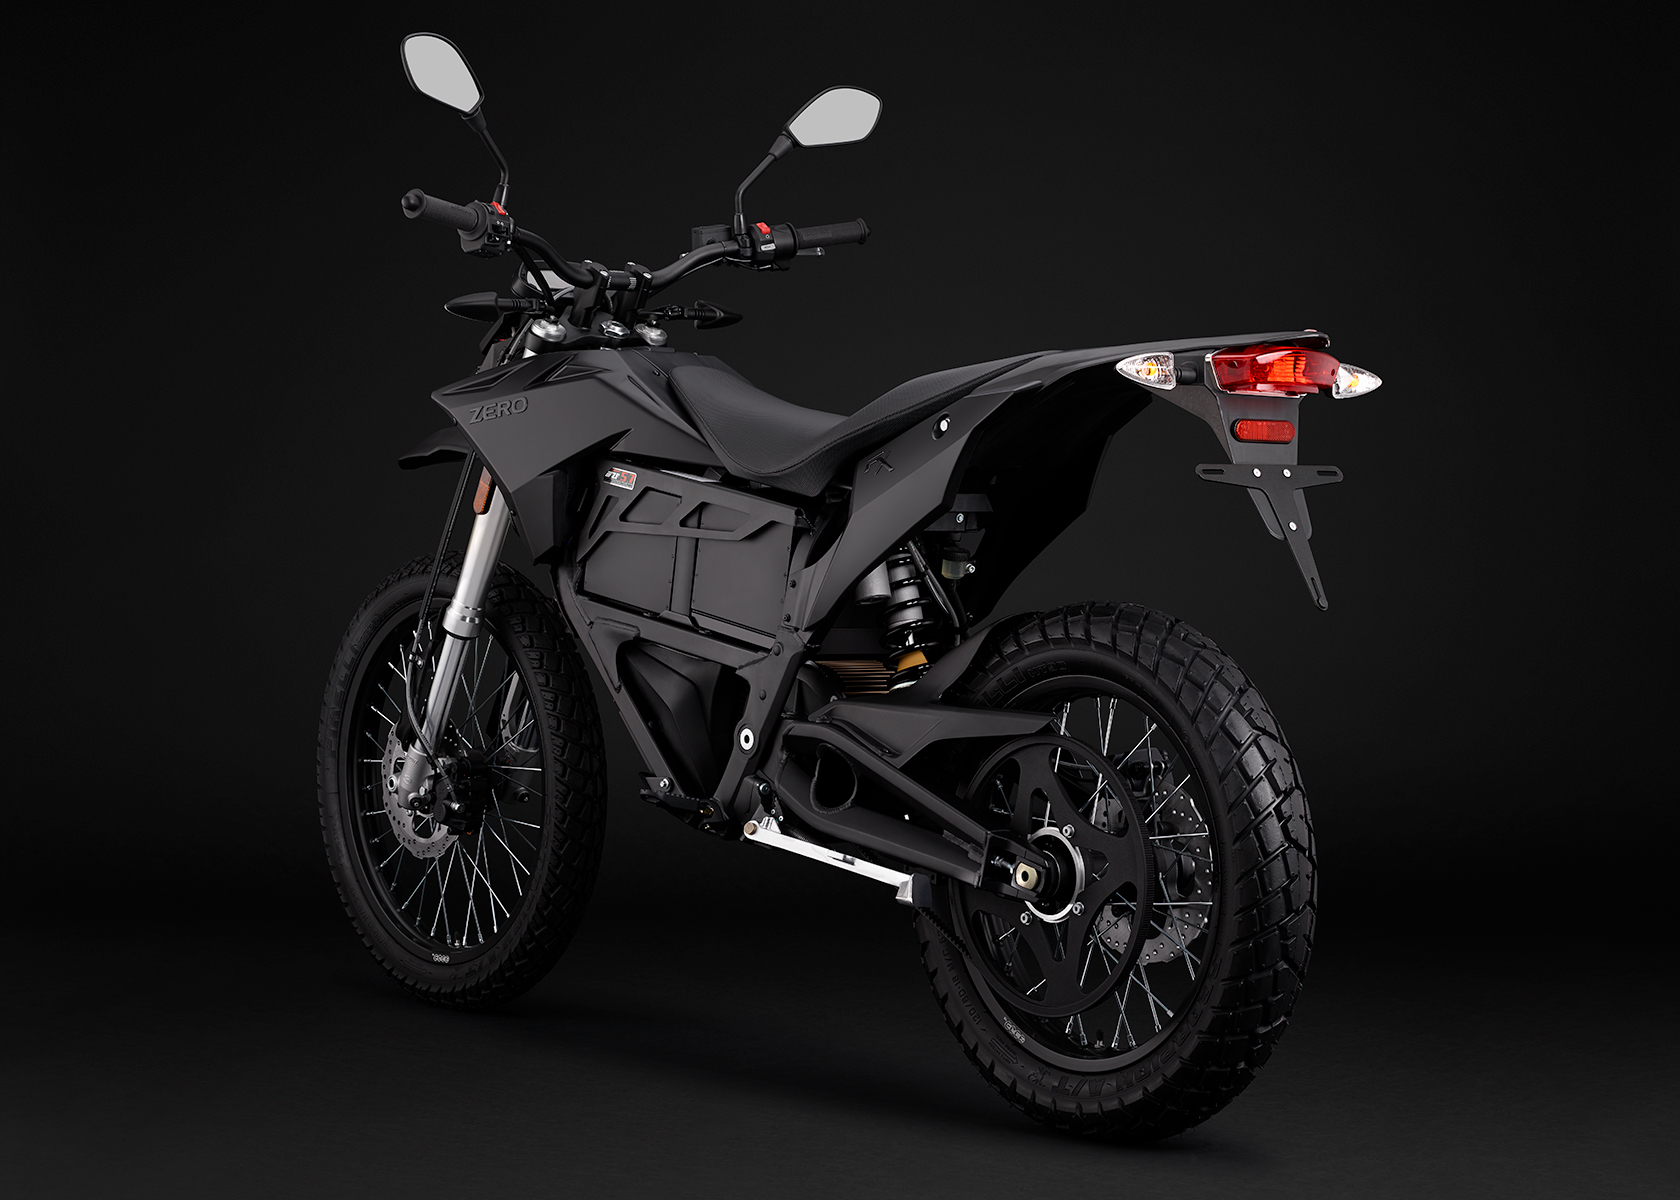 2015 Zero FX Electric Motorcycle: Black Angle Left